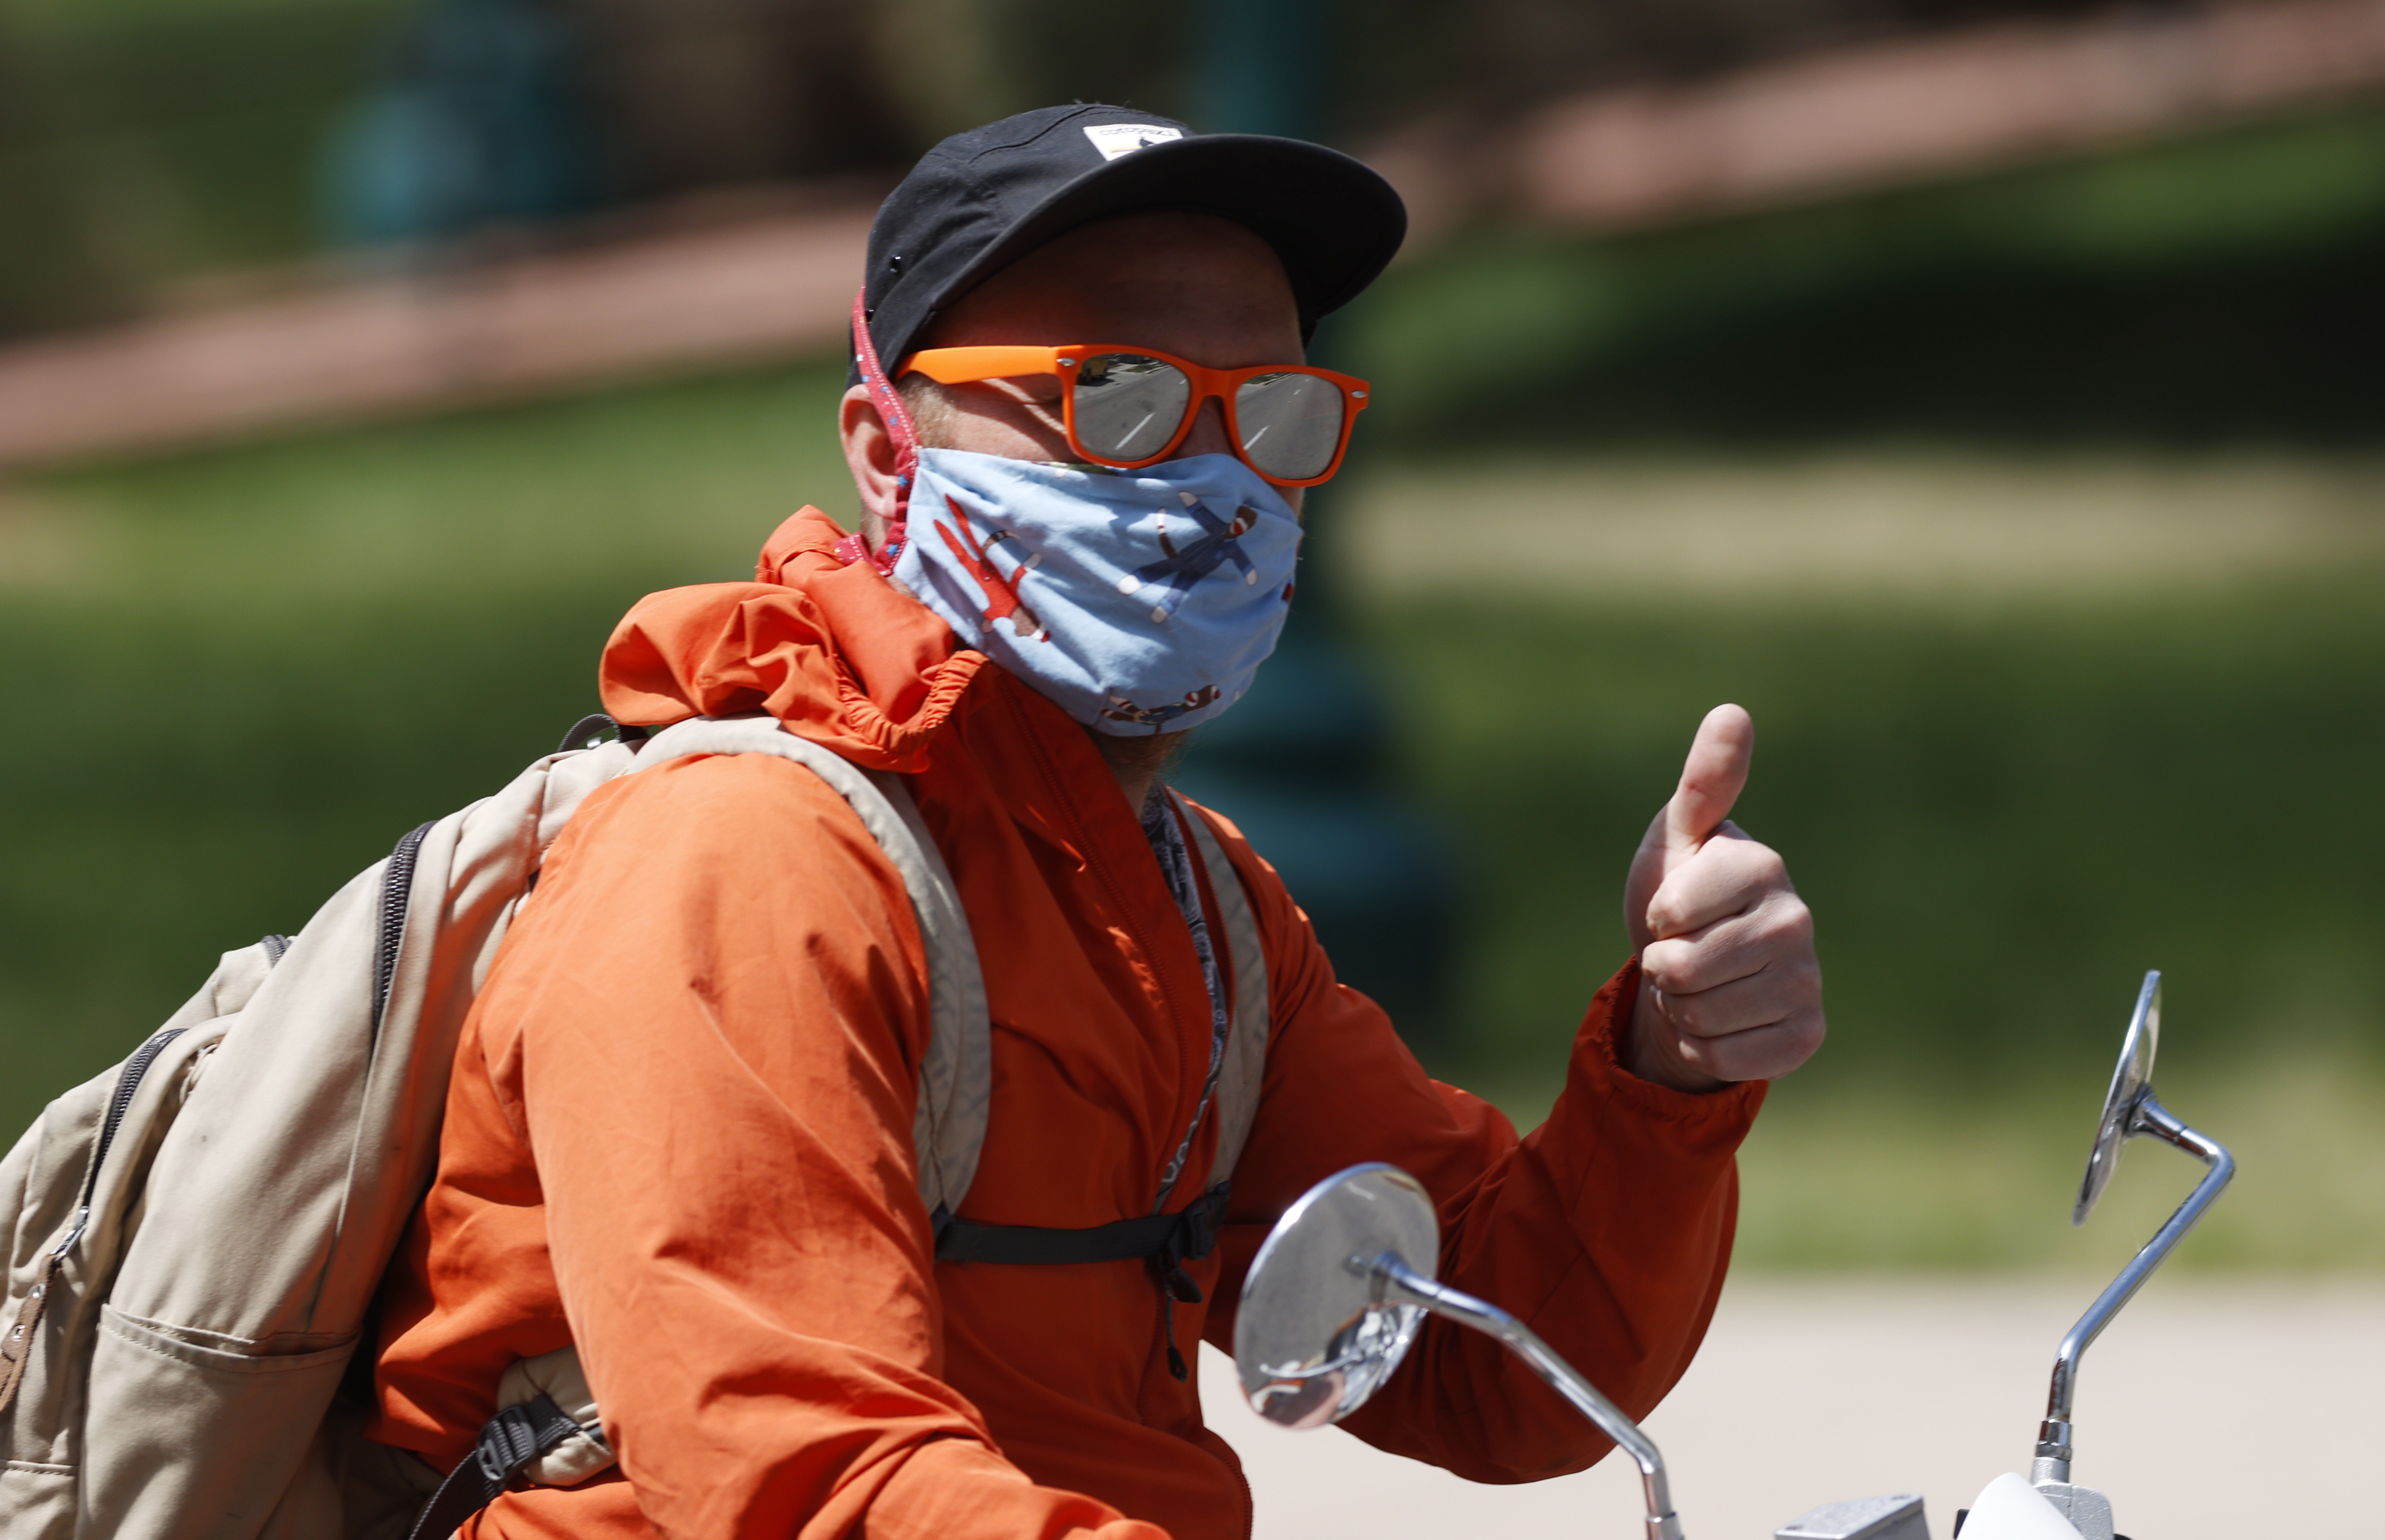 As Denver Makes Wearing Masks Official Some Residents Hope Public Health Order Goes Smoothly